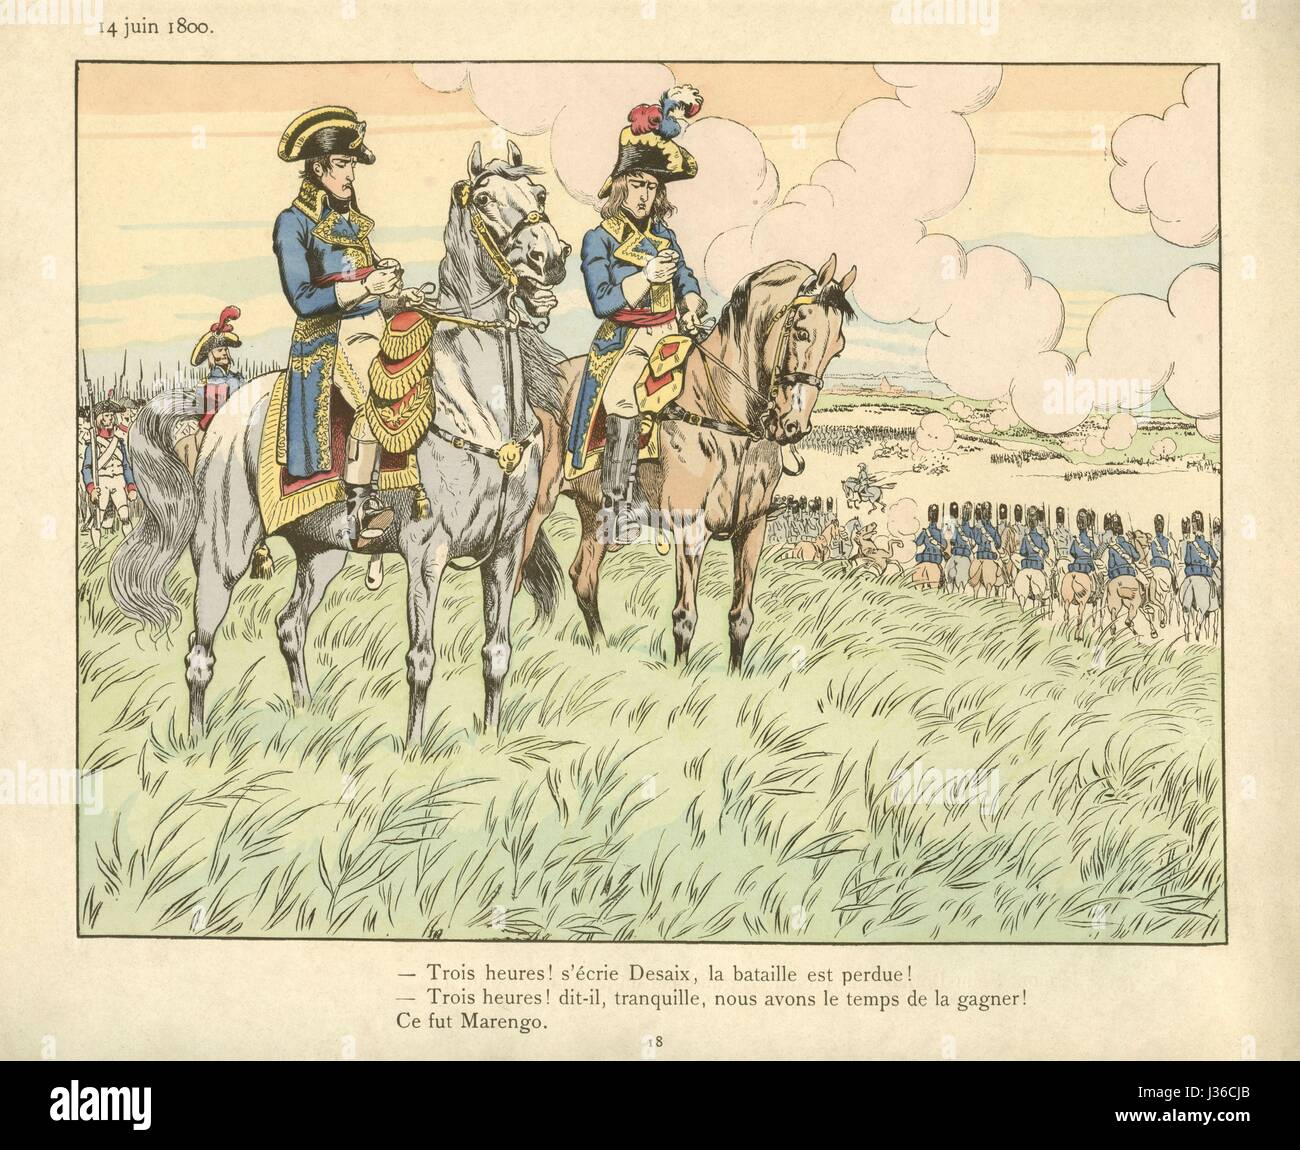 The Battle of Marengo in June 14, 1800.    Illustration on page 18 of the book for children 'Le Grand Napoléon - Stock Image